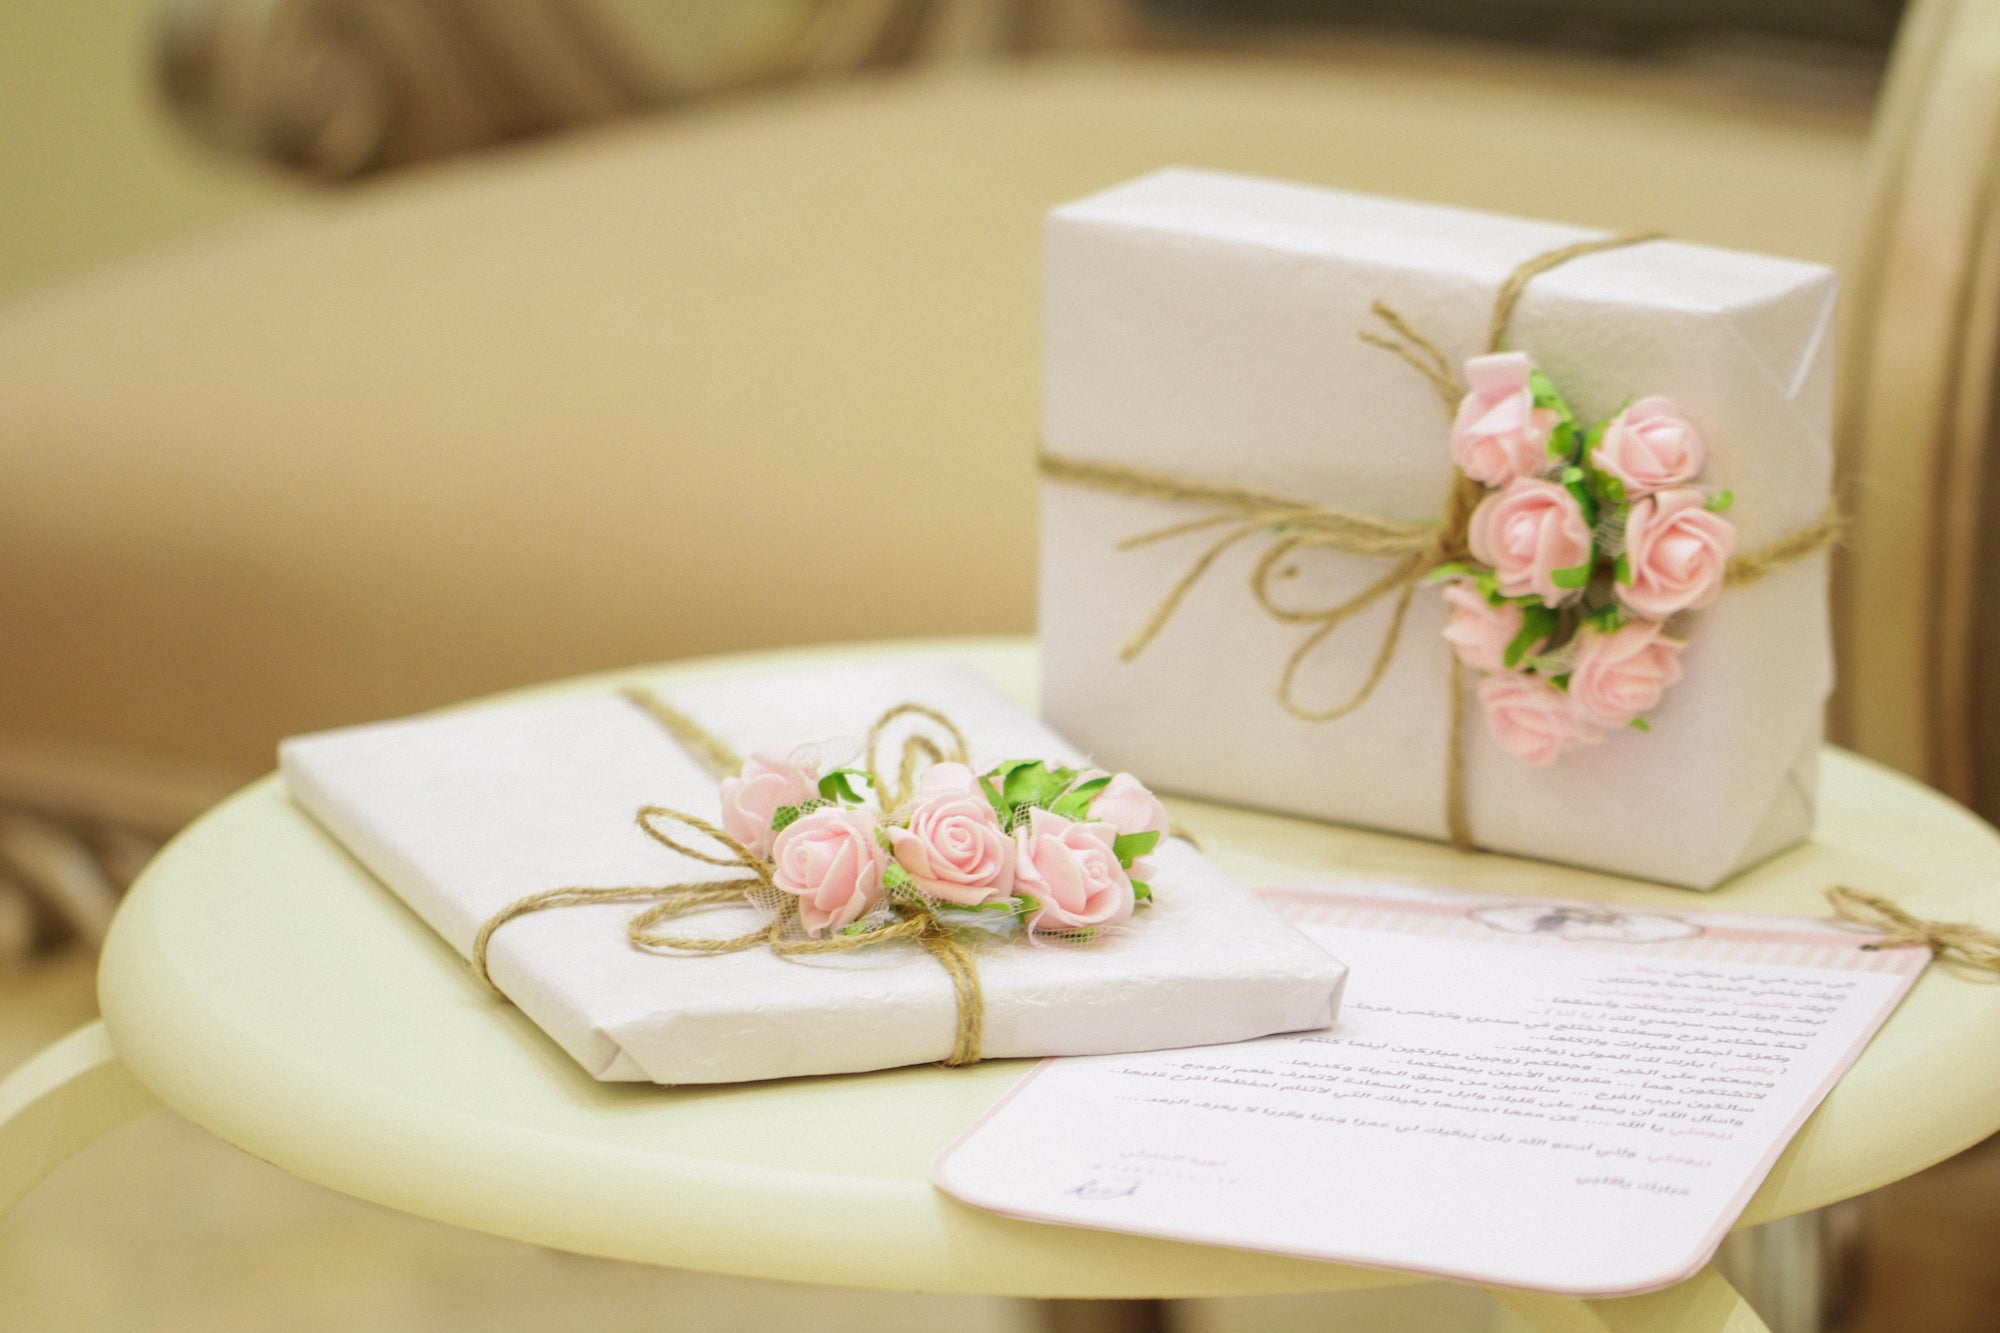 The Five Love Languages, Receiving Gifts: two boxes wrapped in white paper and pink roses, placed on a round coffee table | Talsam, smart jewelry